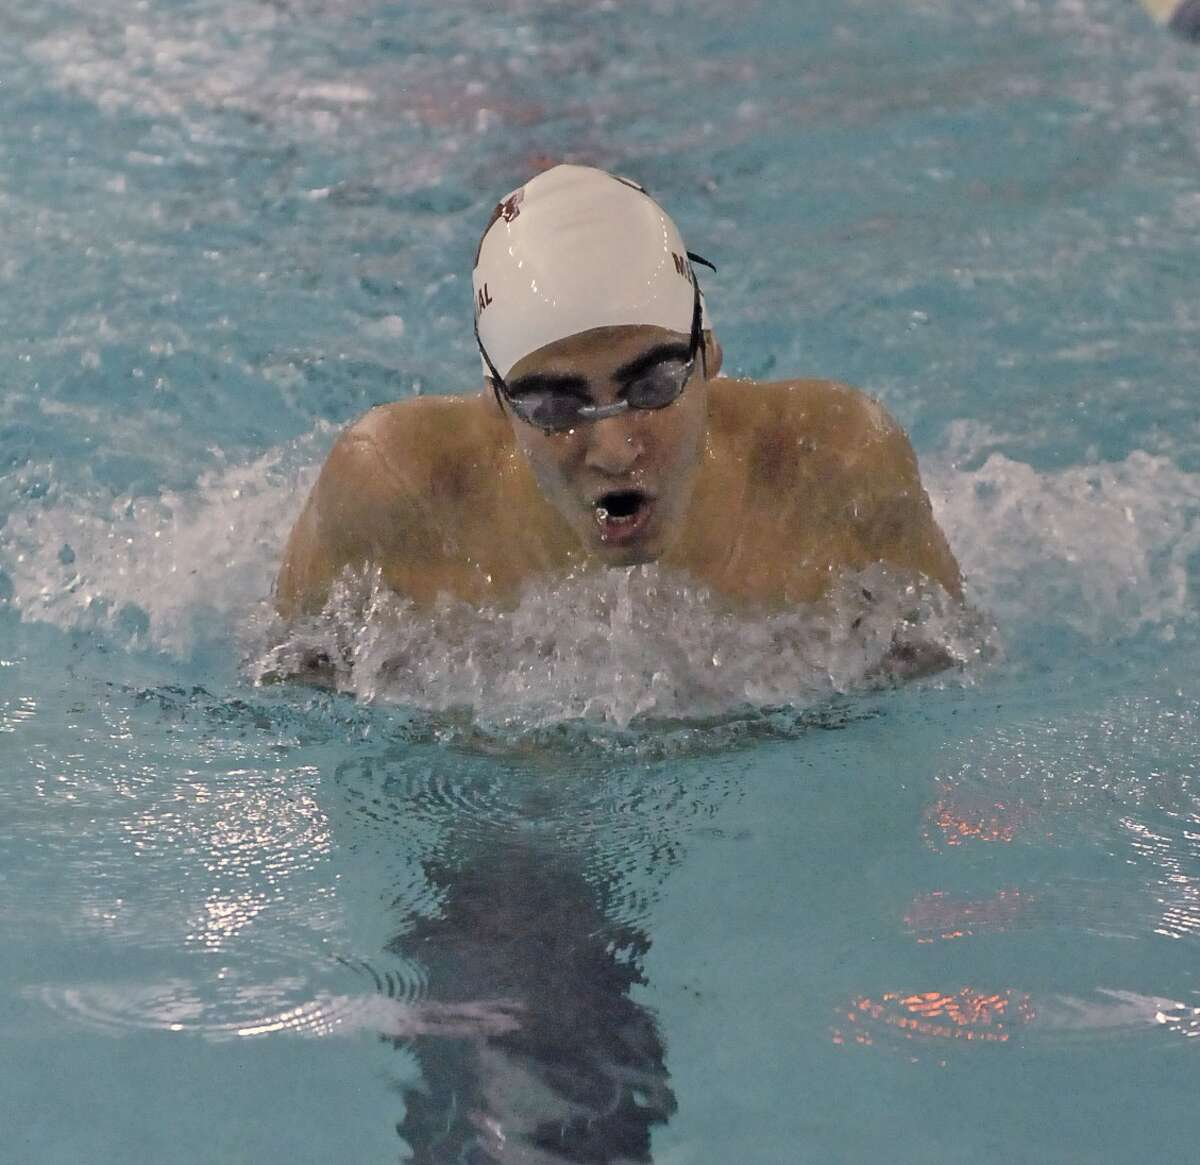 Memorial's Maroun P Koutani competes in the men's 100 yard breaststroke during their meet with Westside at the Spring Branch ISD Natatorium Thursday 1/17/13. Photo by Tony Bullard.